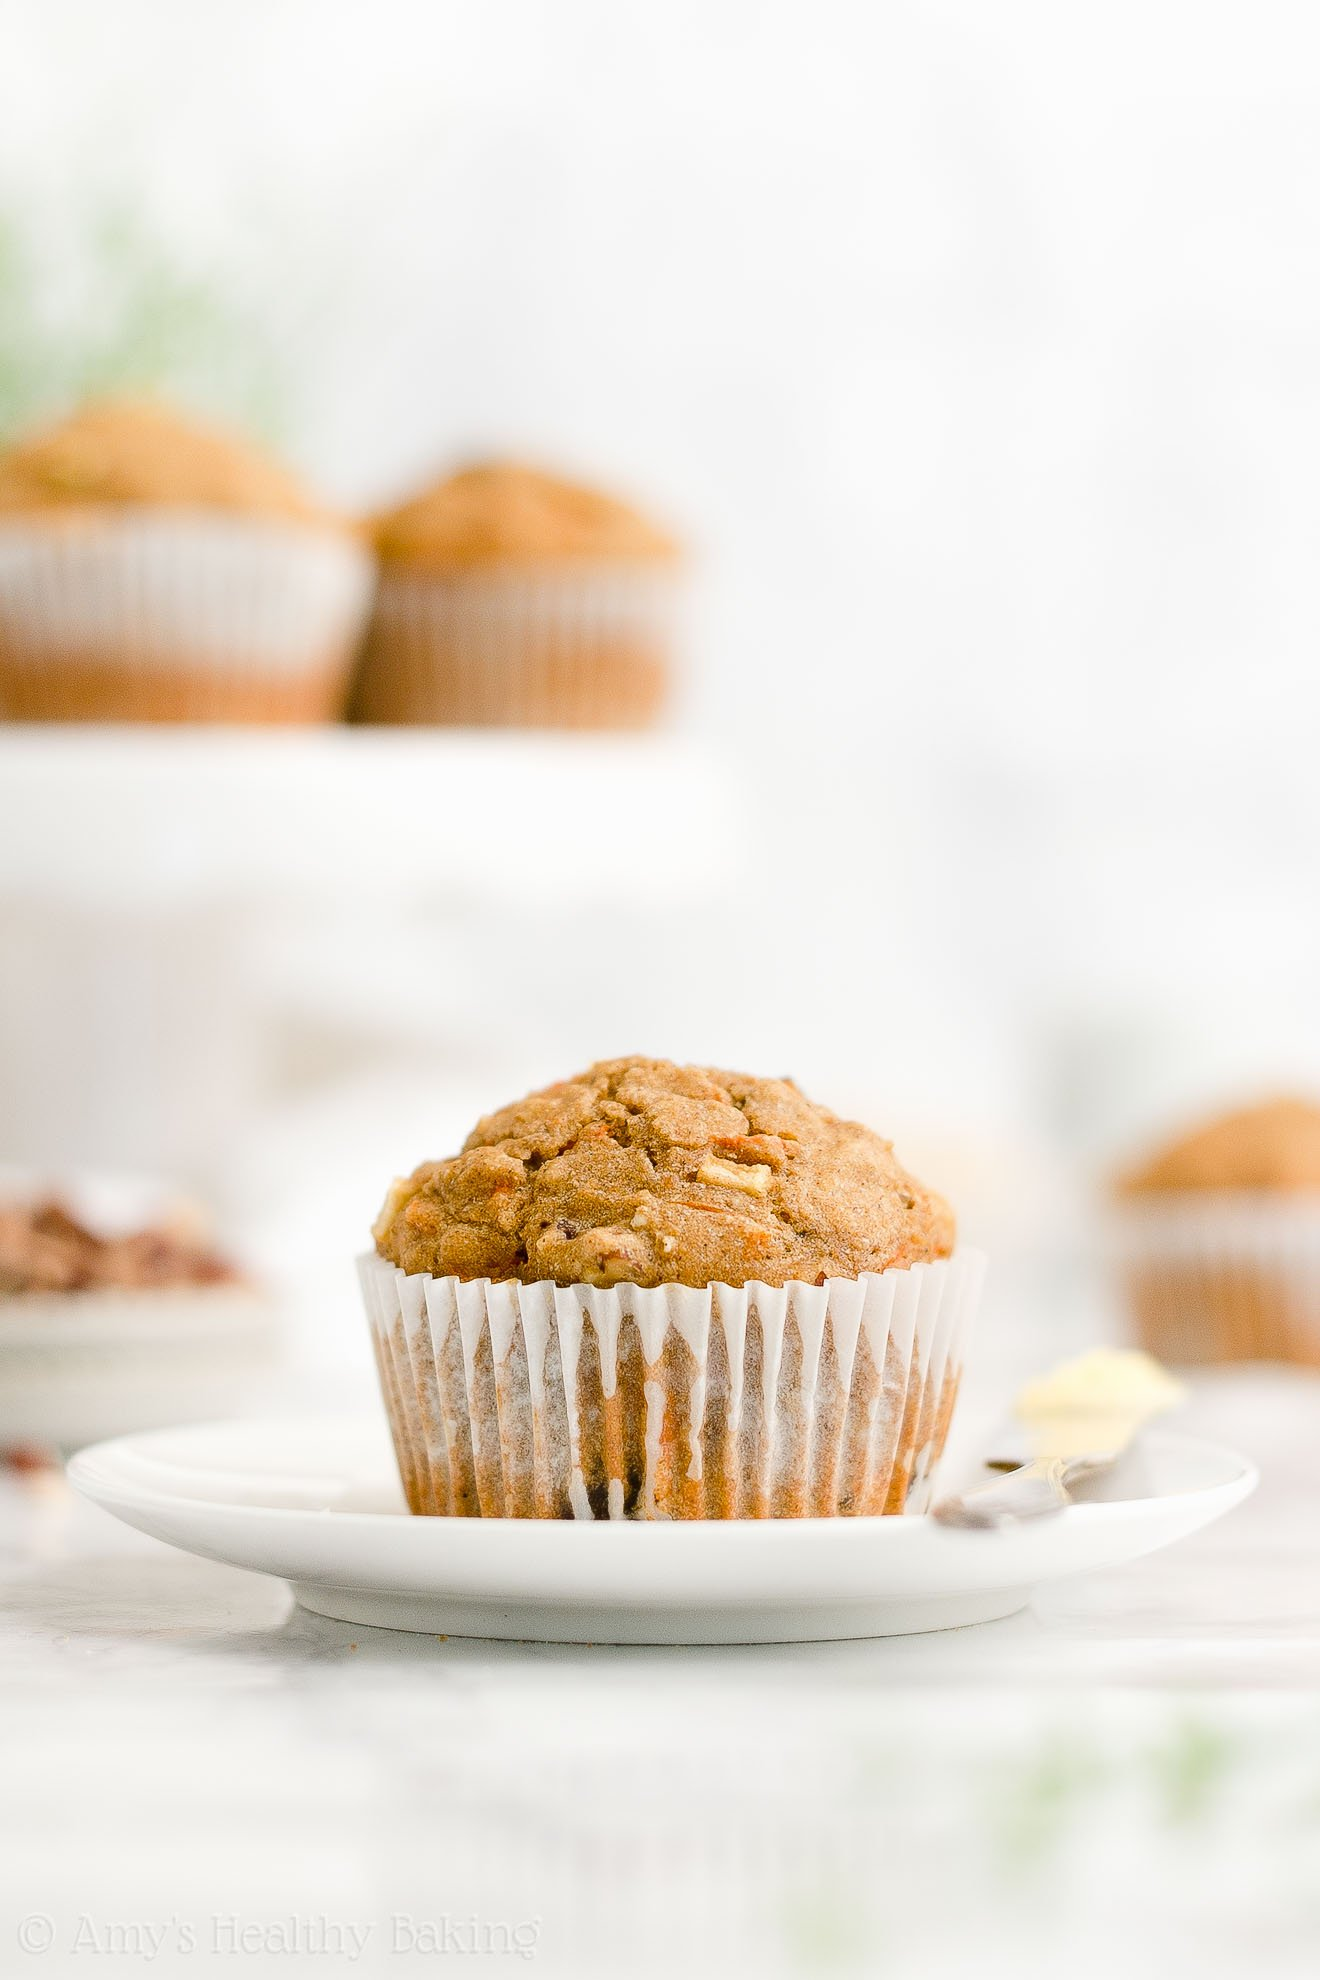 Best Easy Healthy Gluten Free Sugar Free Moist Morning Glory Oatmeal Muffins